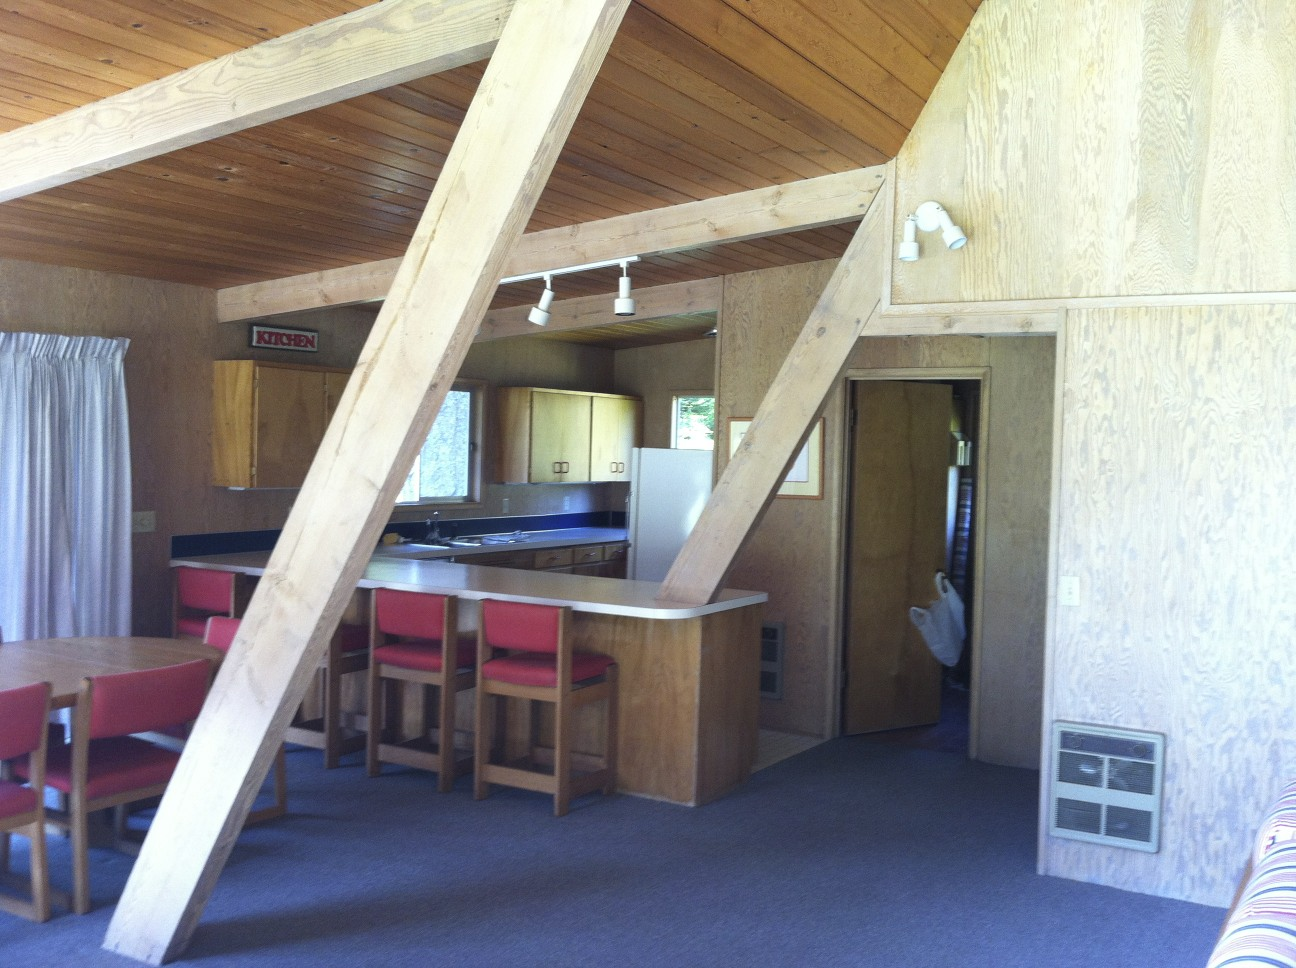 The kitchen was recesses behind the Aframe's roof beams